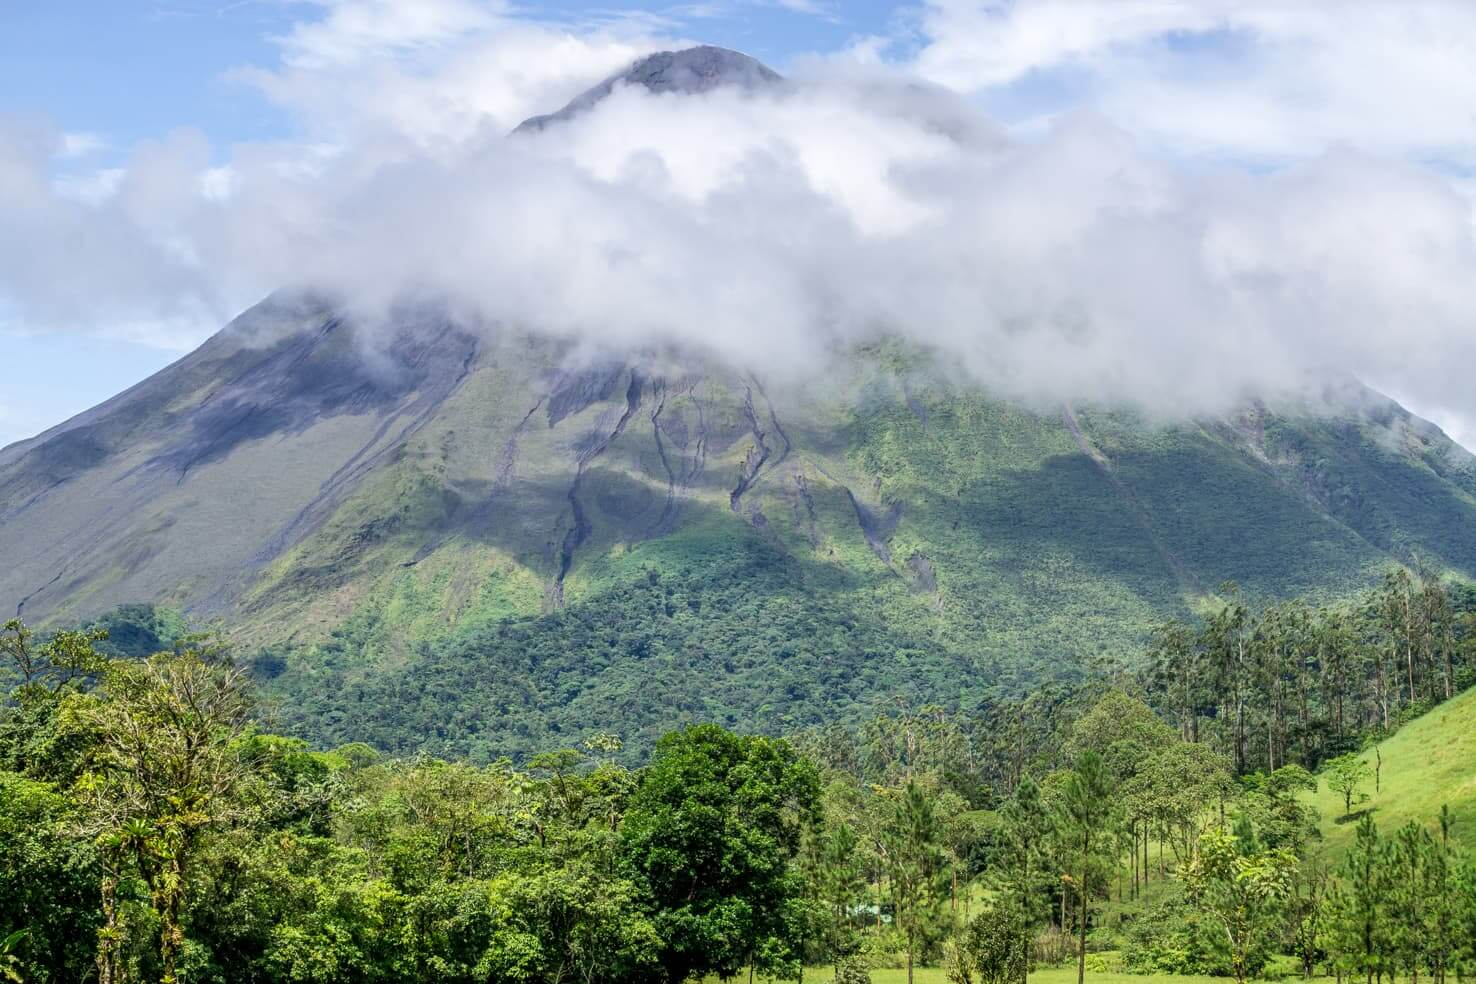 10 days in Costa Rica - Arenal Volcano National Park